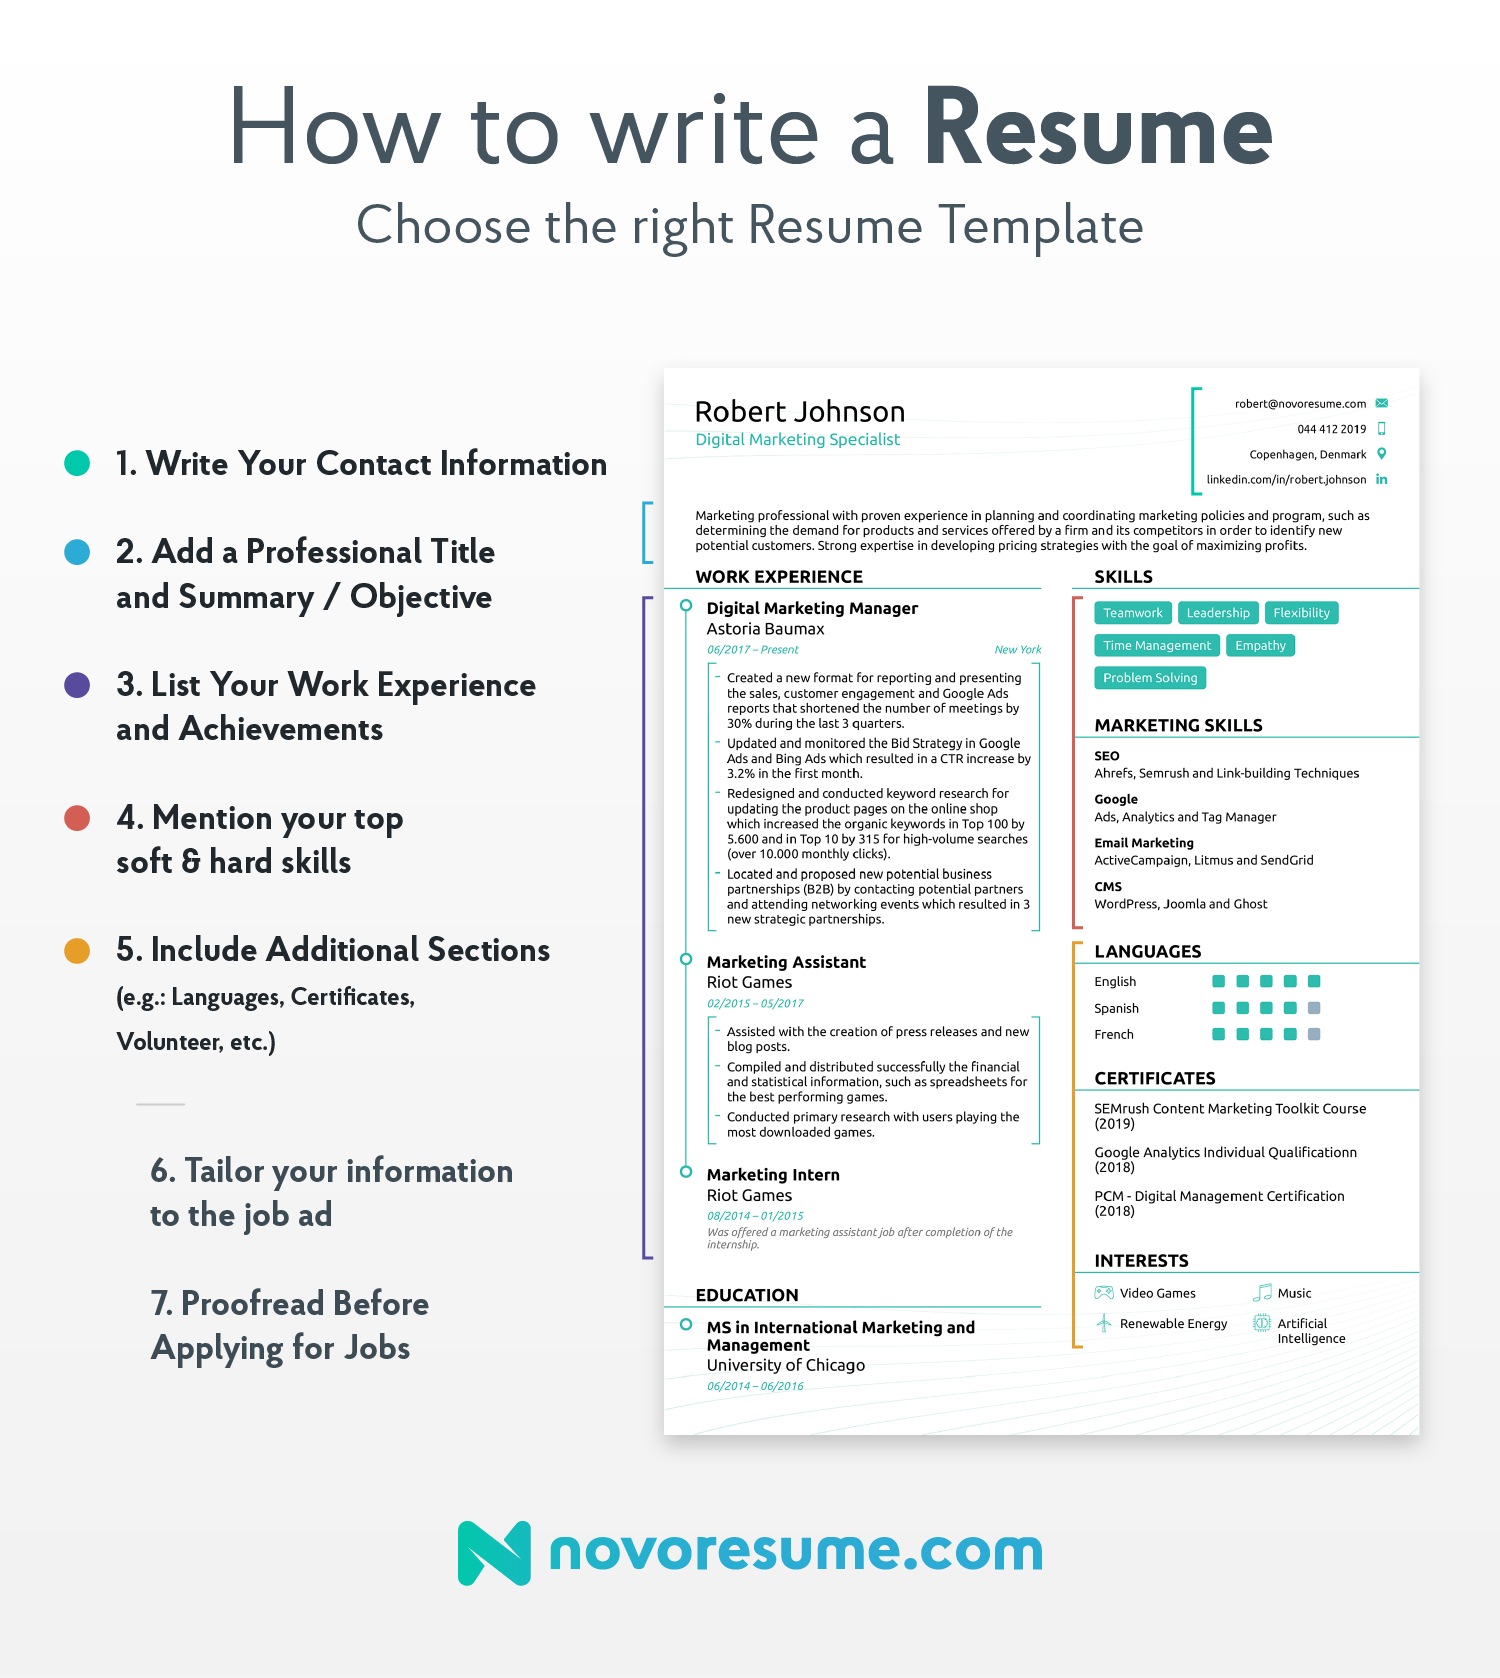 What S The Best Resume Font Size And Format For 2019 Resume Fonts Job Resume Examples Basic Resume